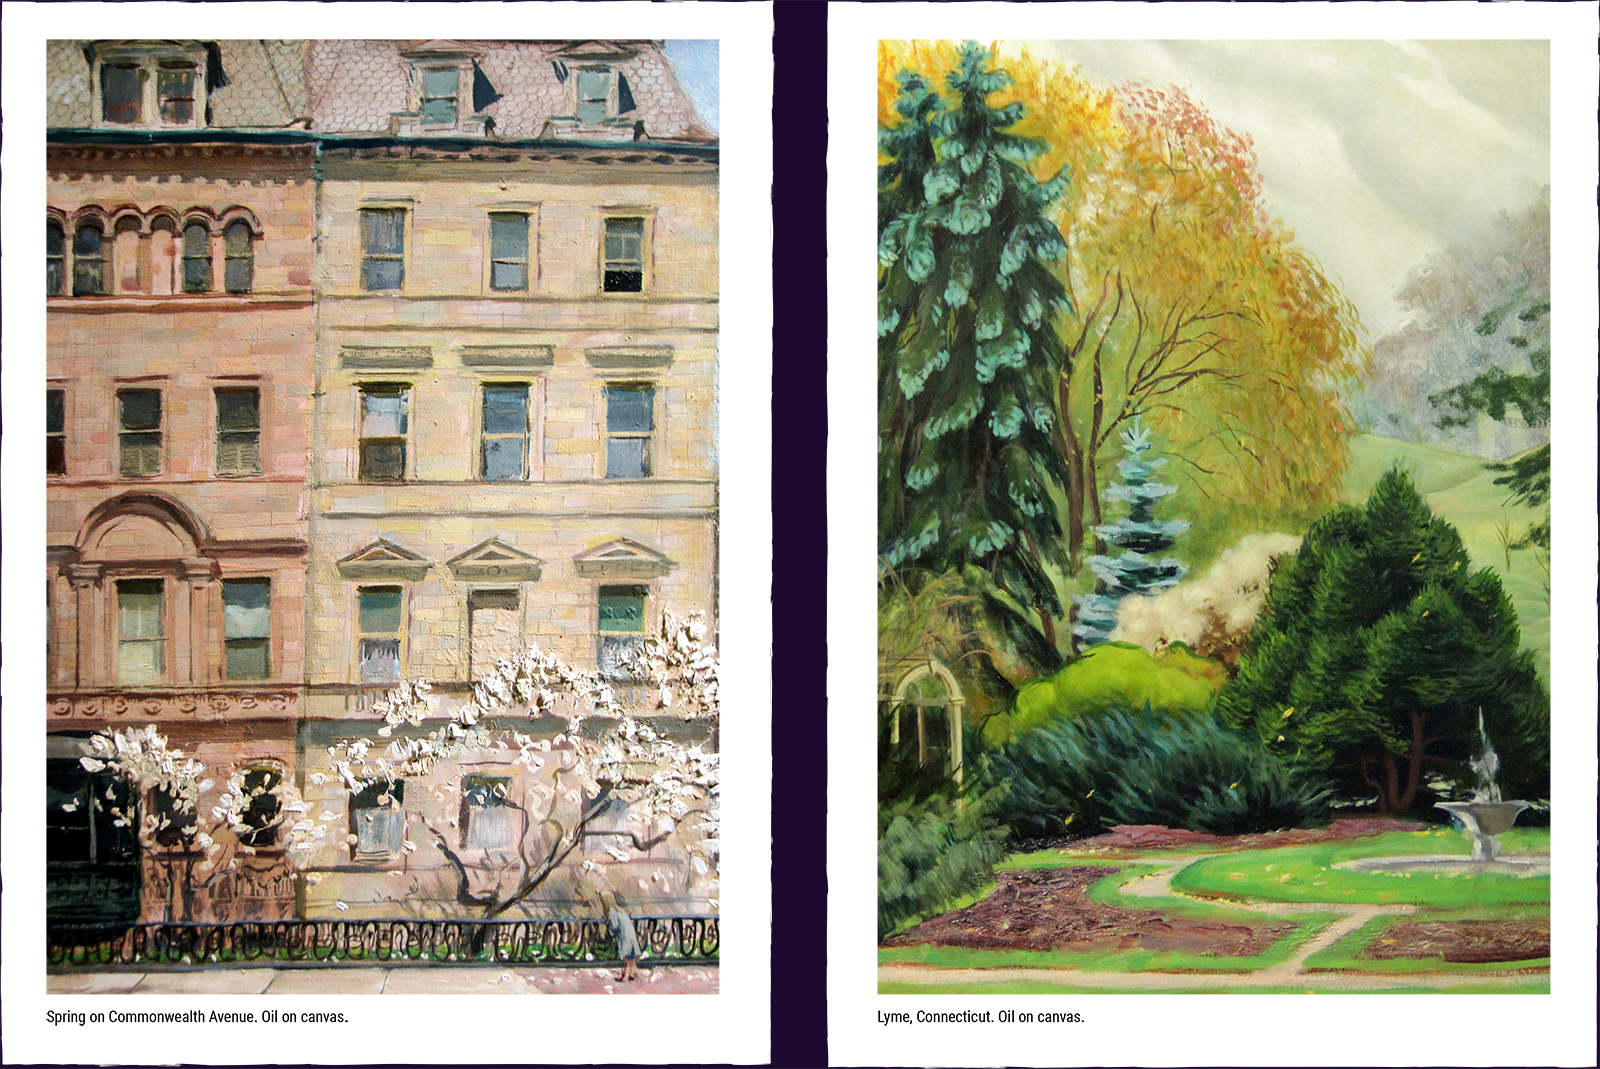 Two landscape paintings. (1) Spring on Commonwealth Avenue. Oil on canvas. (2) Lyme, Connecticut. Oil on canvas.